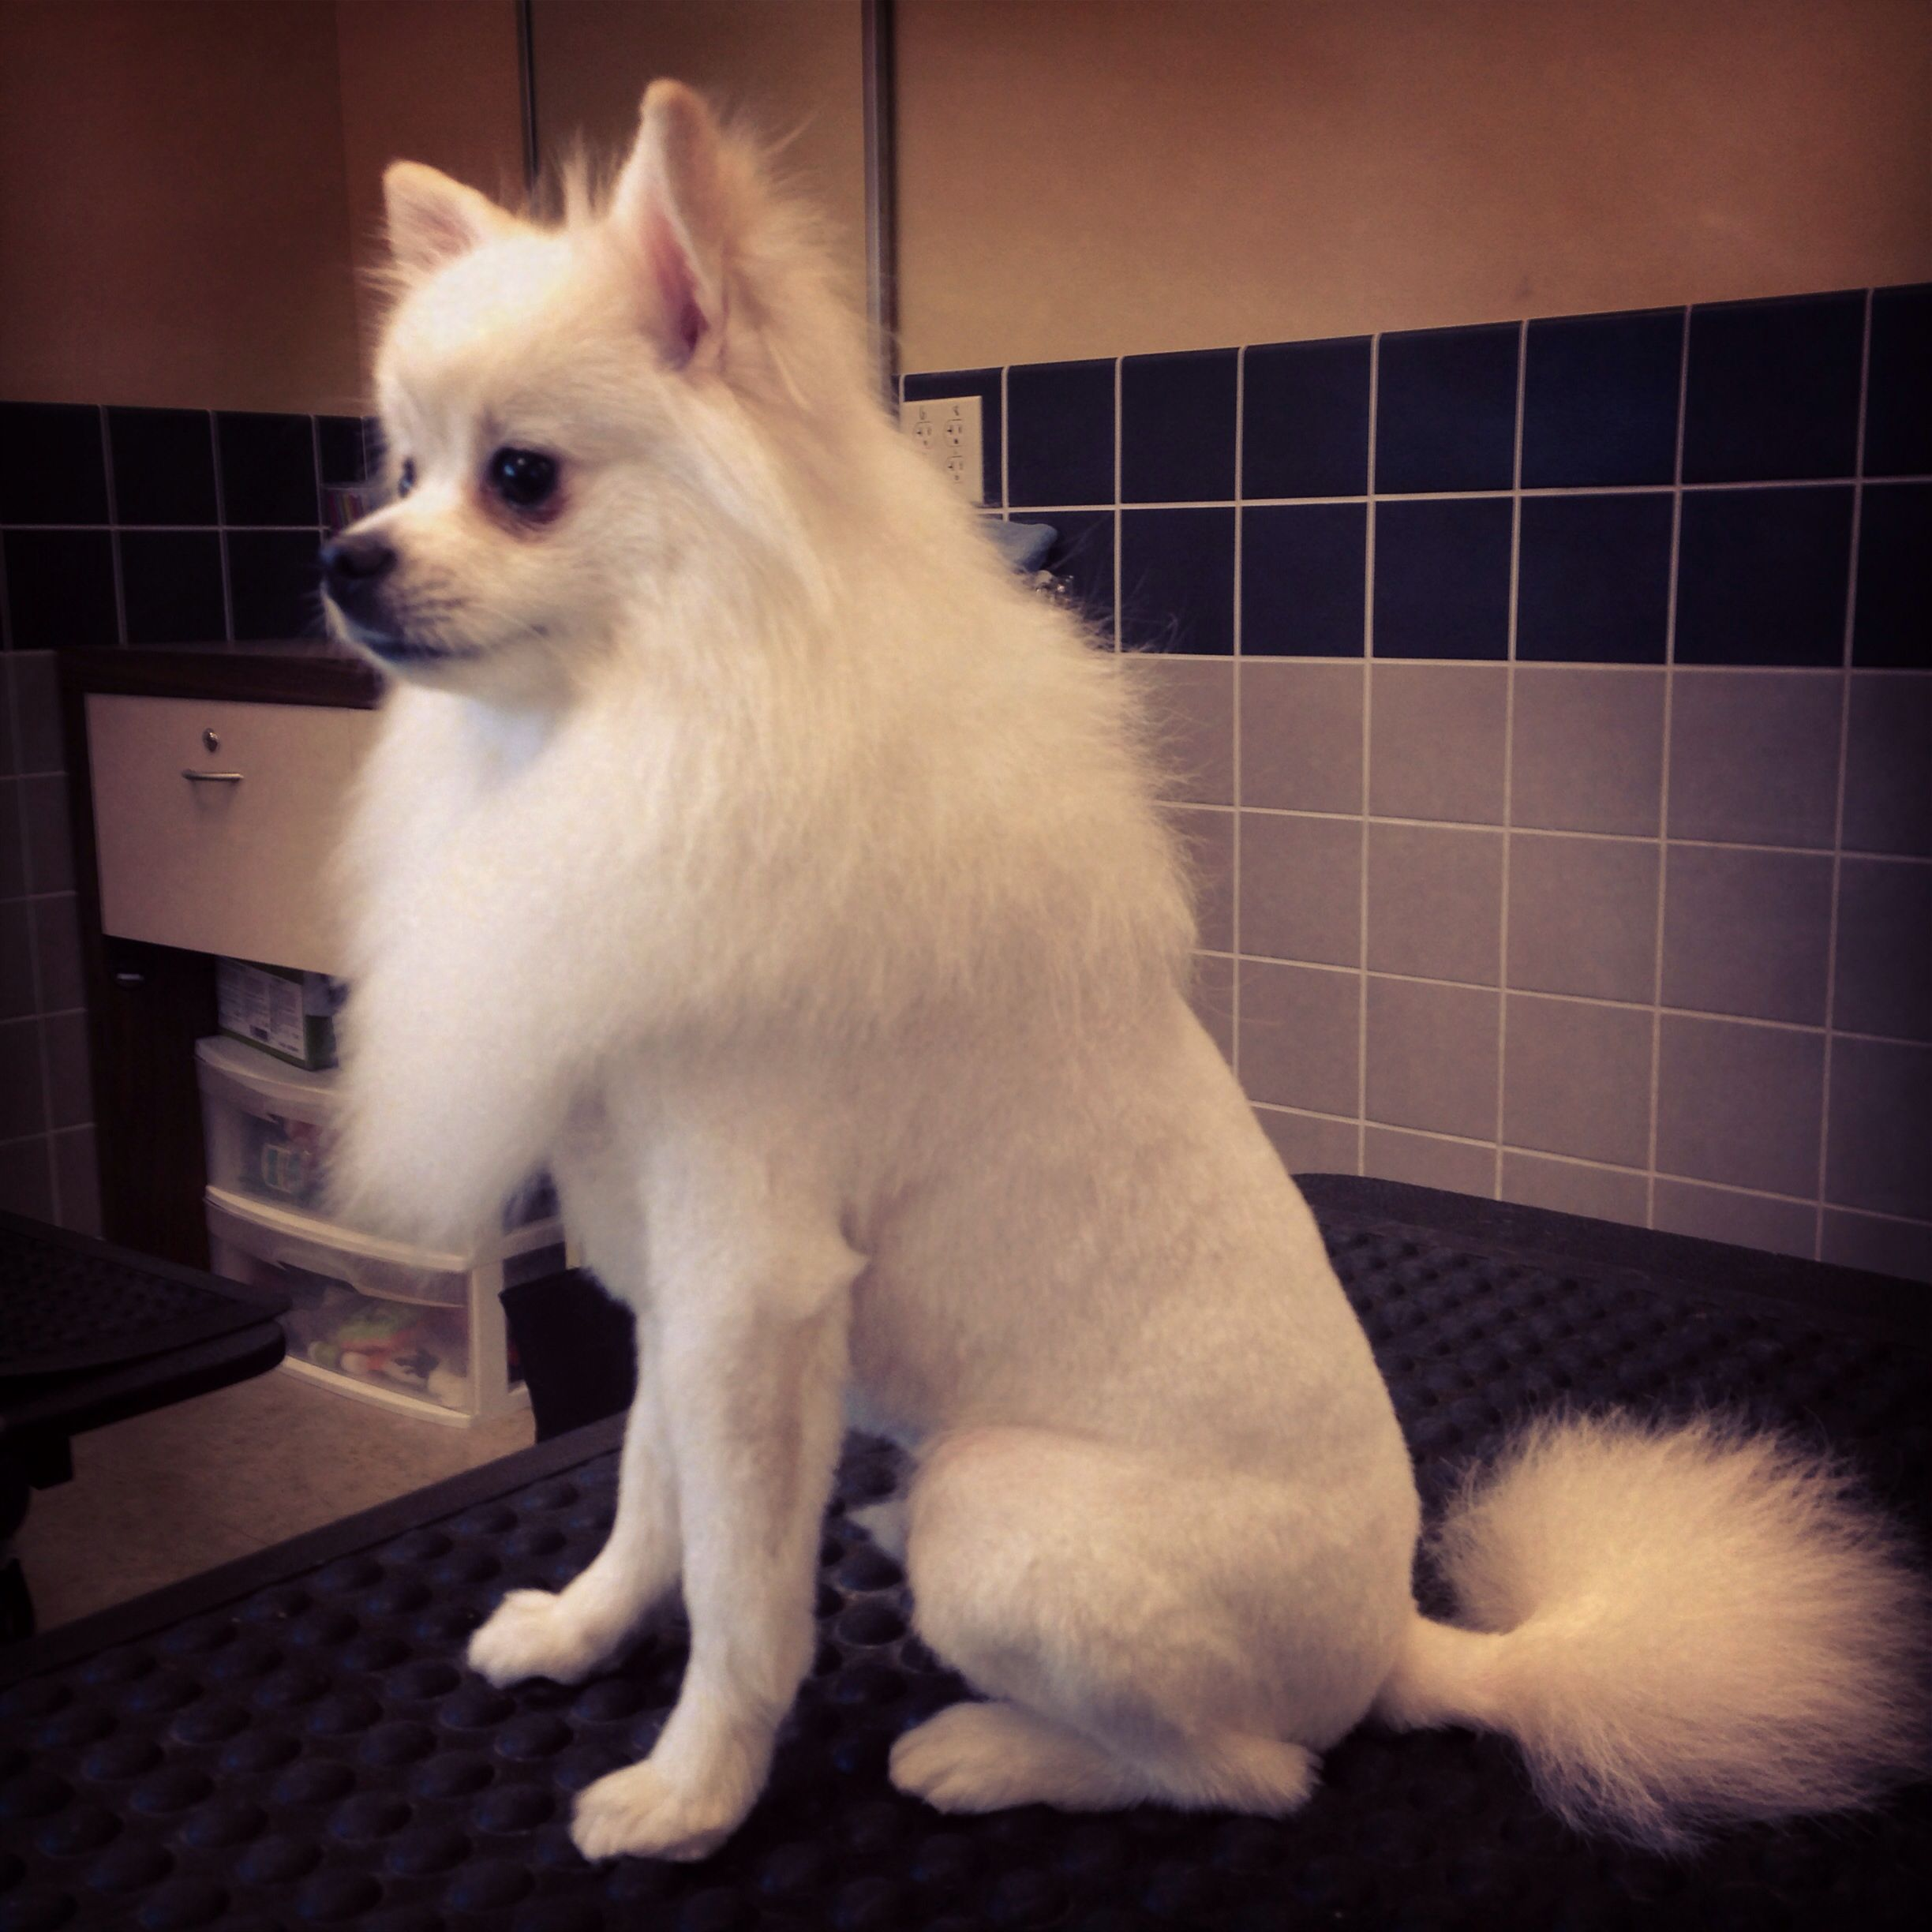 Pomeranian lion cut dog grooming groomed by jackie chapman dog pomeranian lion cut dog grooming groomed by jackie chapman solutioingenieria Choice Image